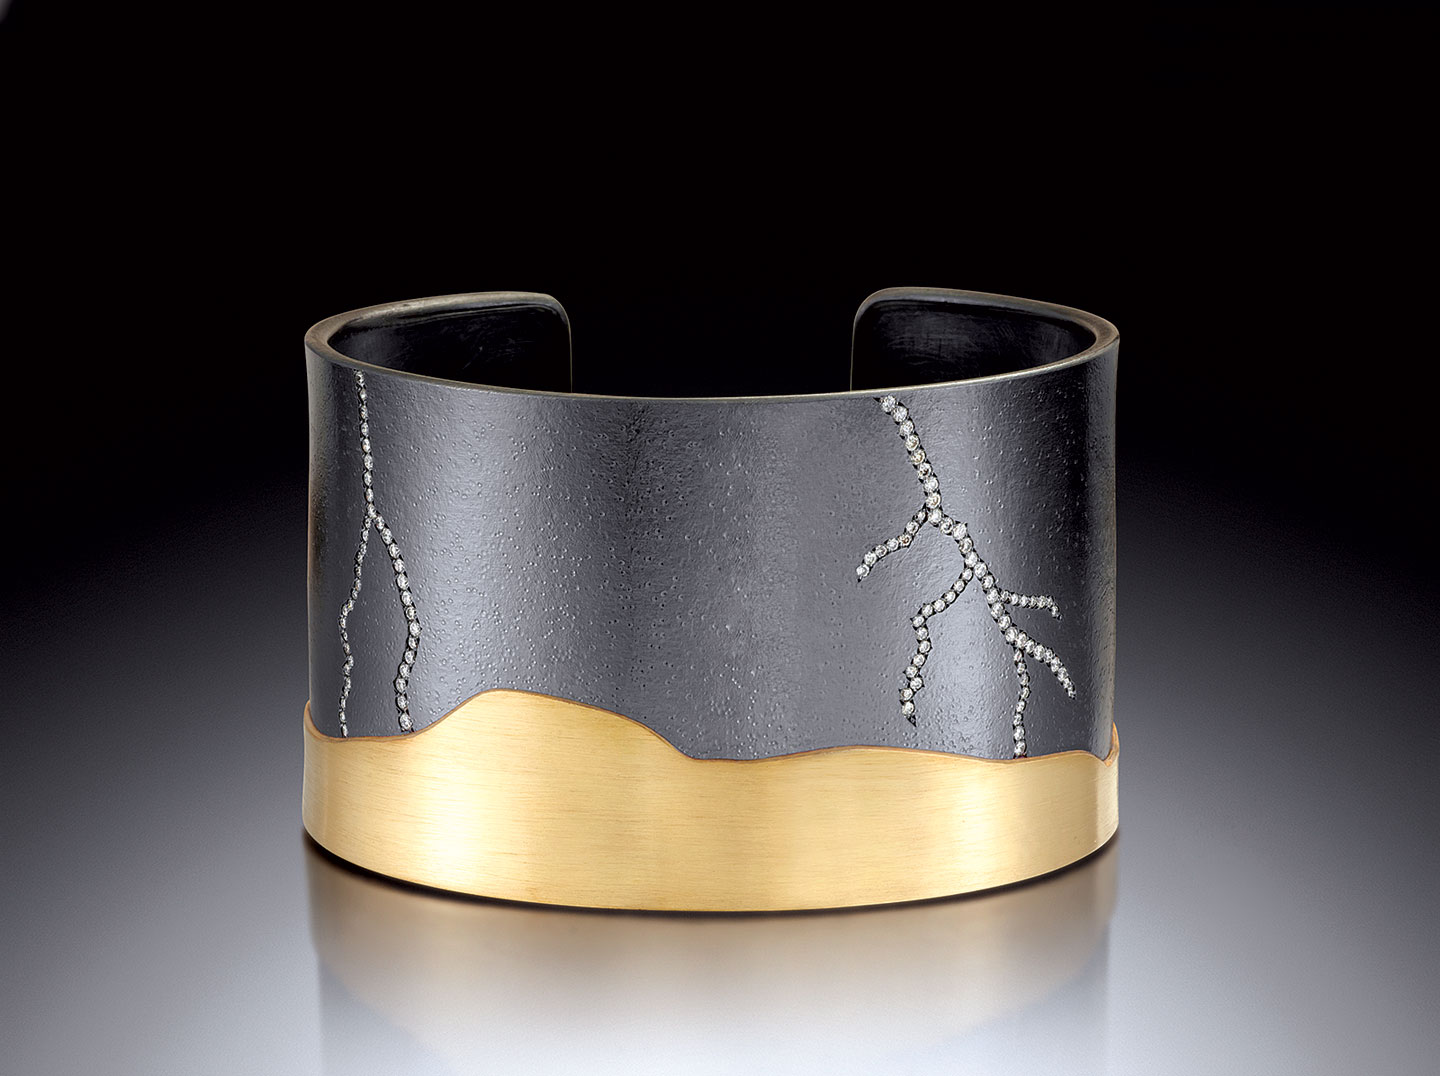 LIGHTNING CUFF WITH TWO BOLTS of oxidized sterling silver, eighteen karat yellow gold, white diamonds, 6.4 x 3.8 x 4.4 centimeters, 2016.